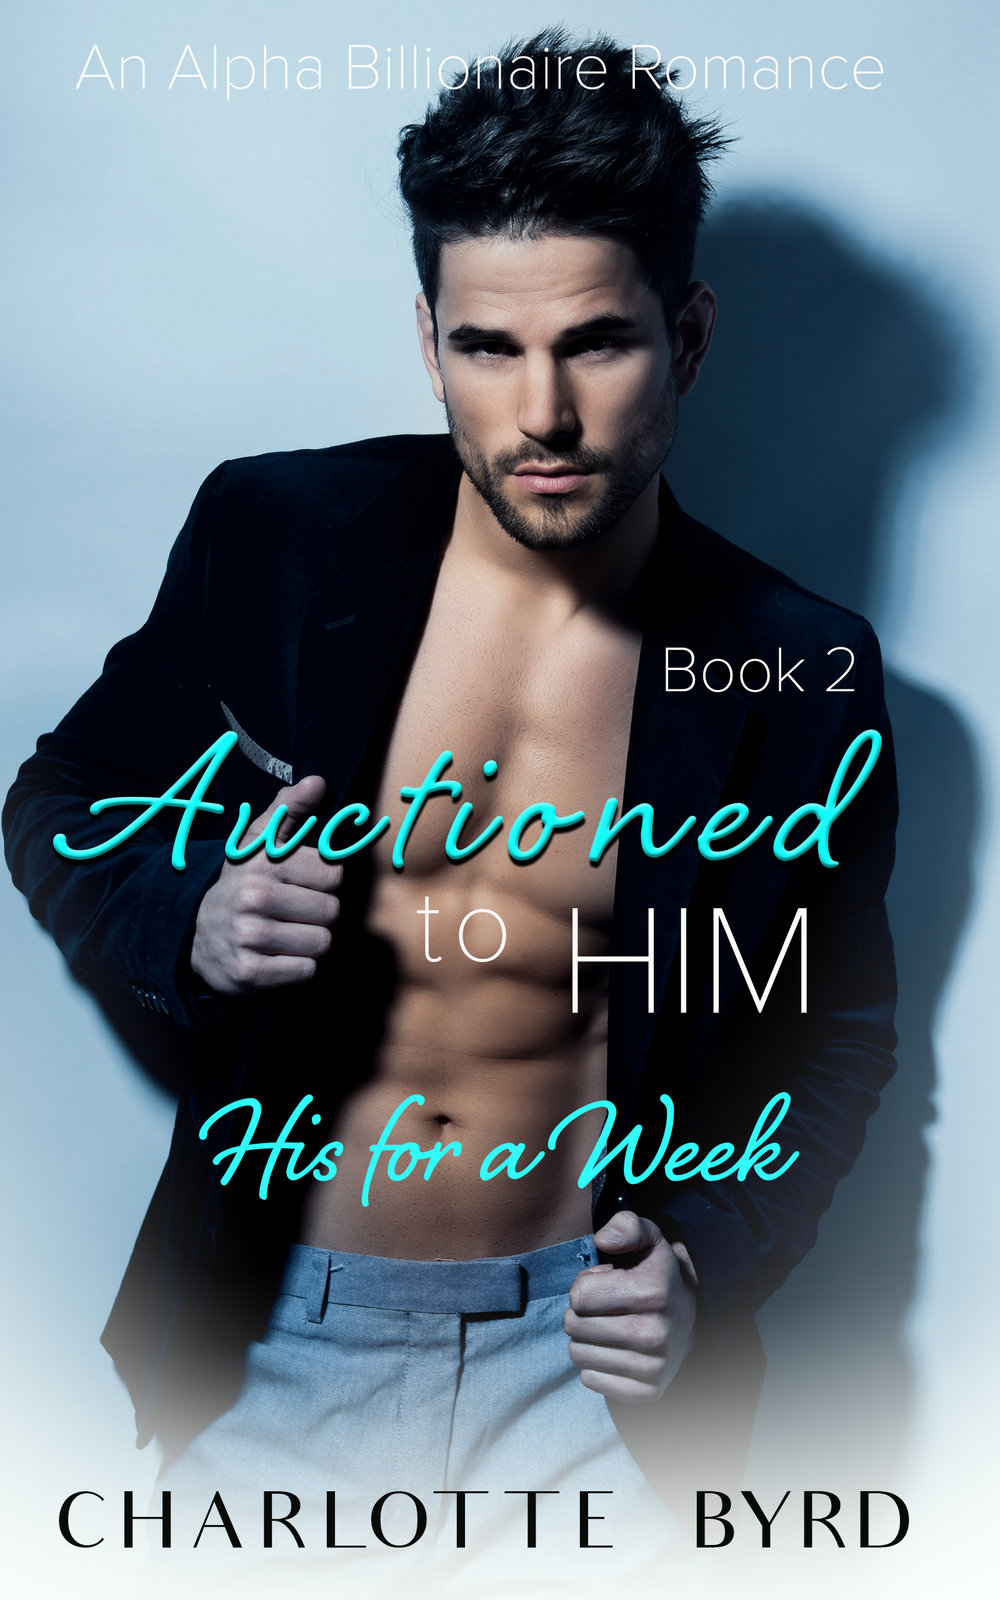 FREE on Kindle Unlimited! - Aiden I wanted to own her from the minute I saw her. That's why I bought her for the night at my yacht party, but that one night wasn't enough. I crave her. I have to have her. And for the first time, in a long time, I feel like I'm falling for someone. That can't be right. I'm a confirmed bachelor. I love one-night stands and women who leave in the morning. But Ellie is different. She challenges me. She doesn't listen. She frustrates me on every level and that makes me want her even more. It's not just sex I want. Oh, no…I want more. This week, there are no rules. WARNING: This is a HOT modern day dark erotic romance with an alpha billionaire for fans of EL James, Kira Blakely, and Madison Faye. It contains light bondage, no pain, just pleasure, NO CHEATING, No Cliffhanger, and a Happily Ever After for now. **Book 2 of Auctioned to Him contains Book 1 and BONUS steamy romance novels!**